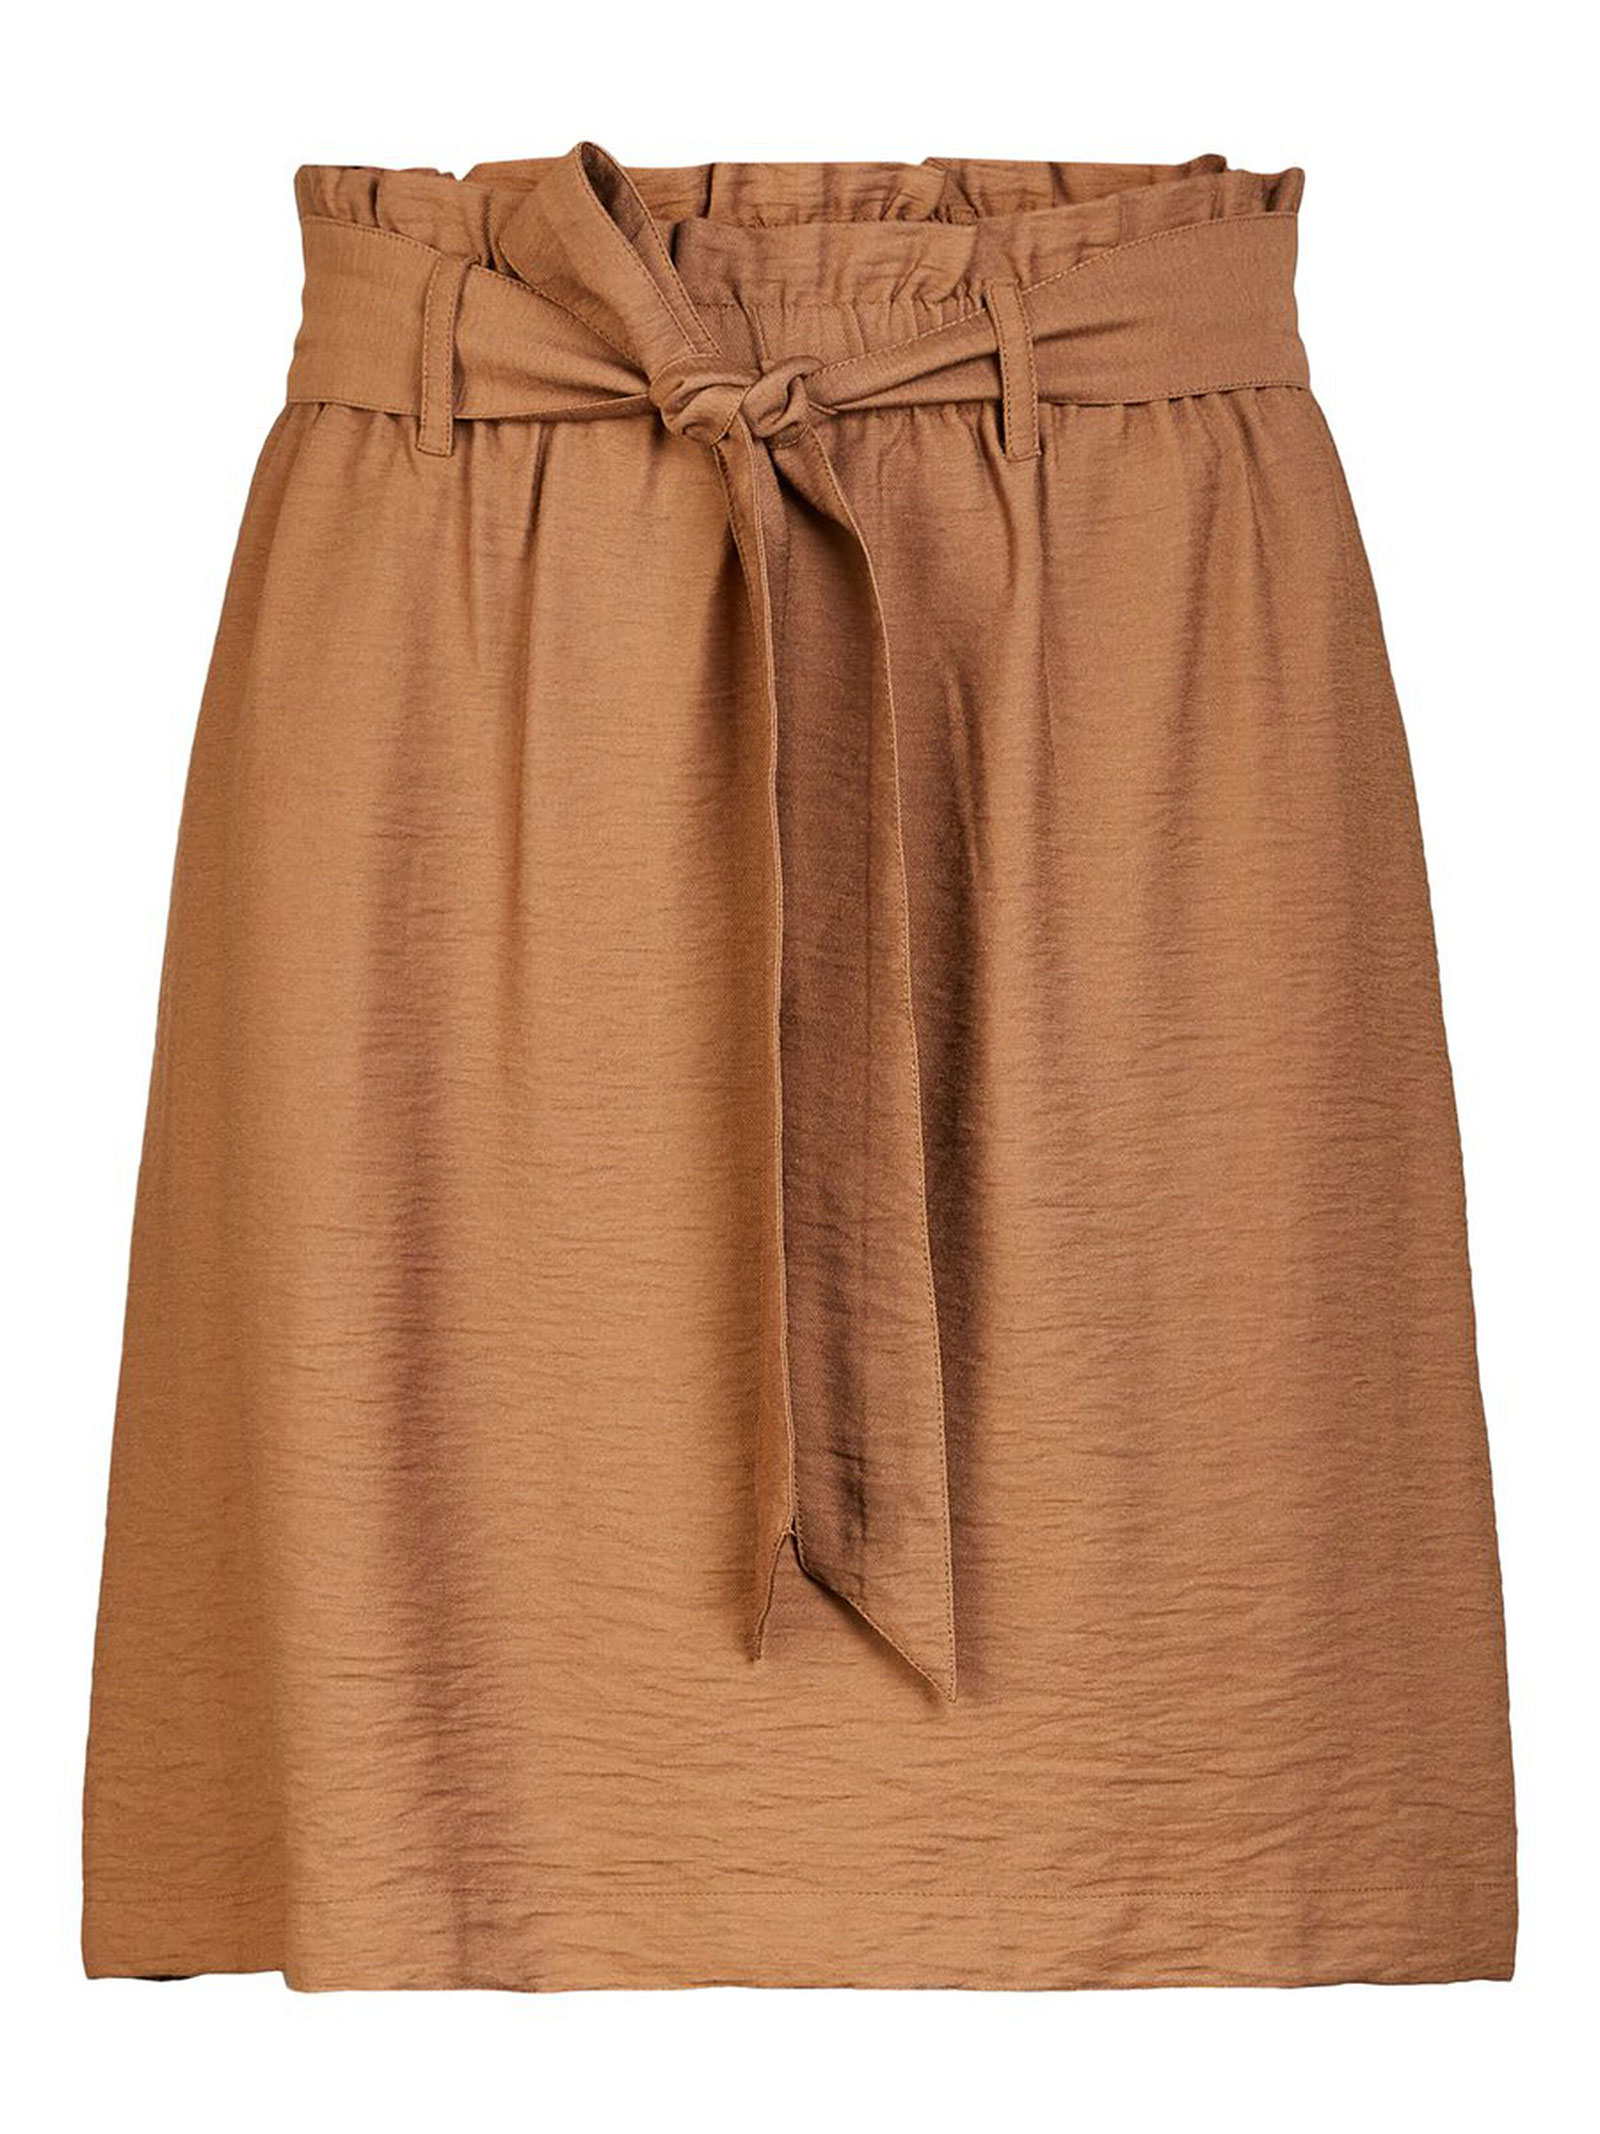 PIECES | Skirt | 17101967CUOIO